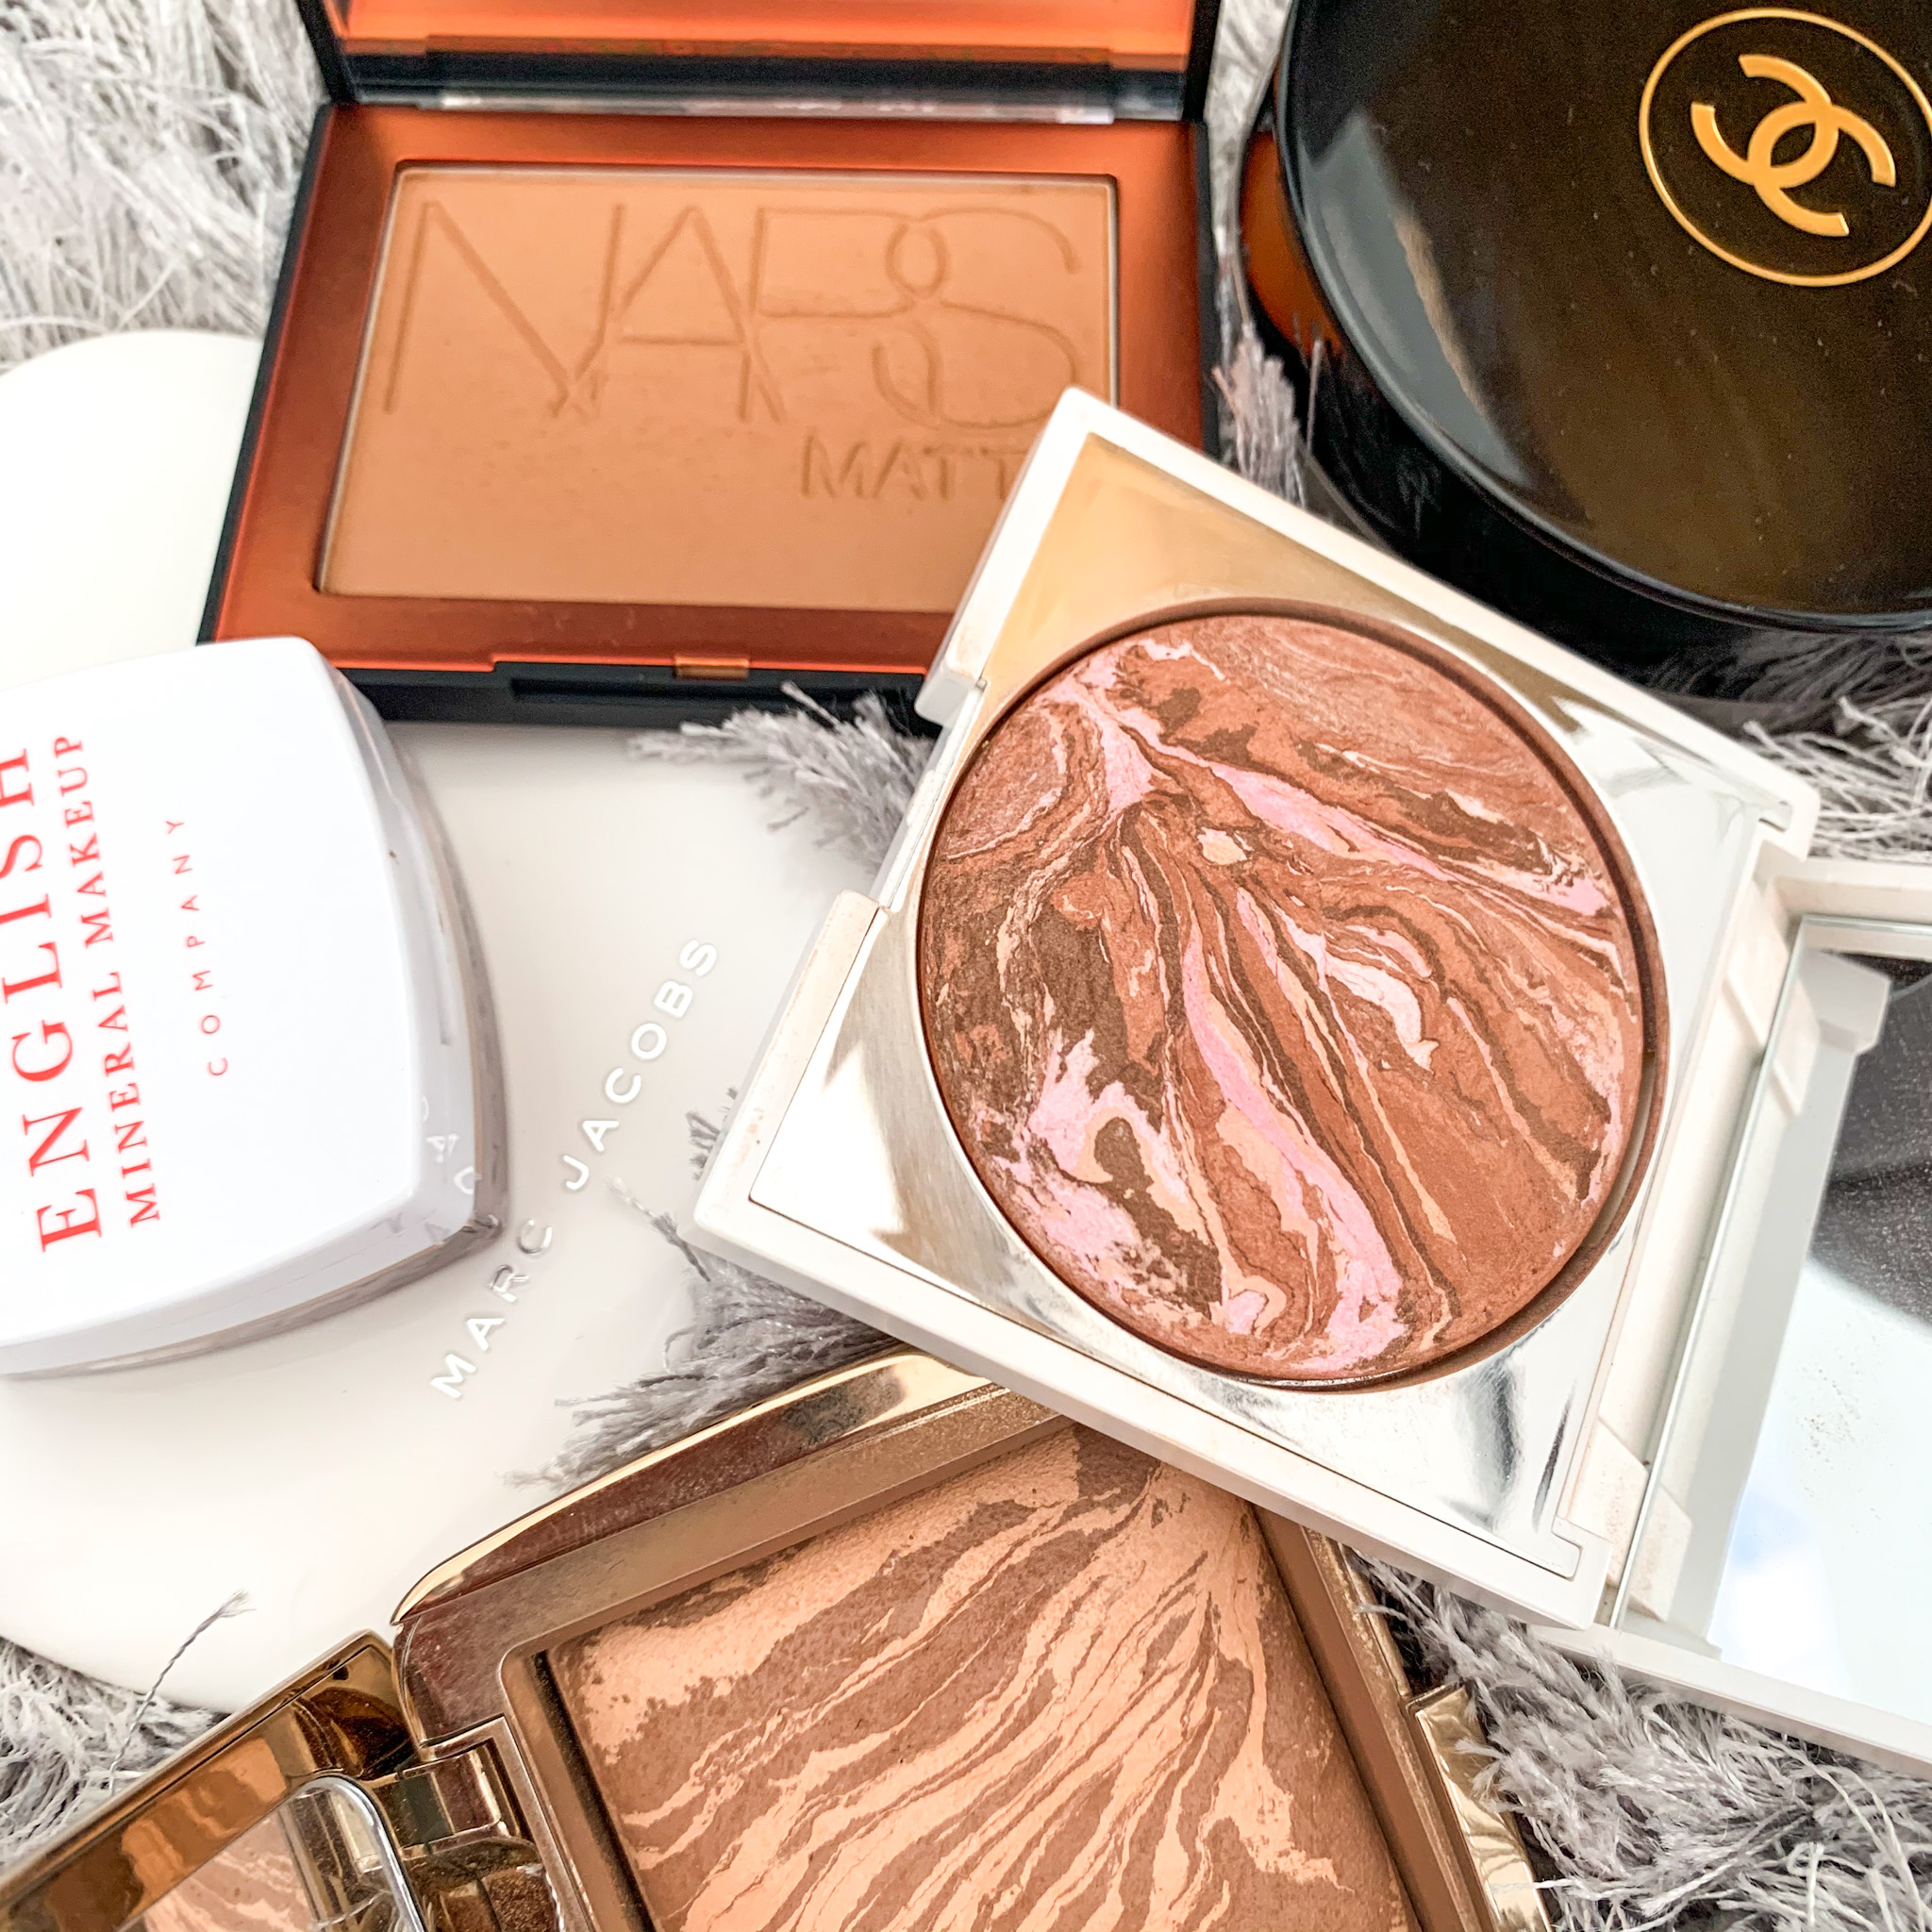 A lineup of bronzers used and recommended by me.